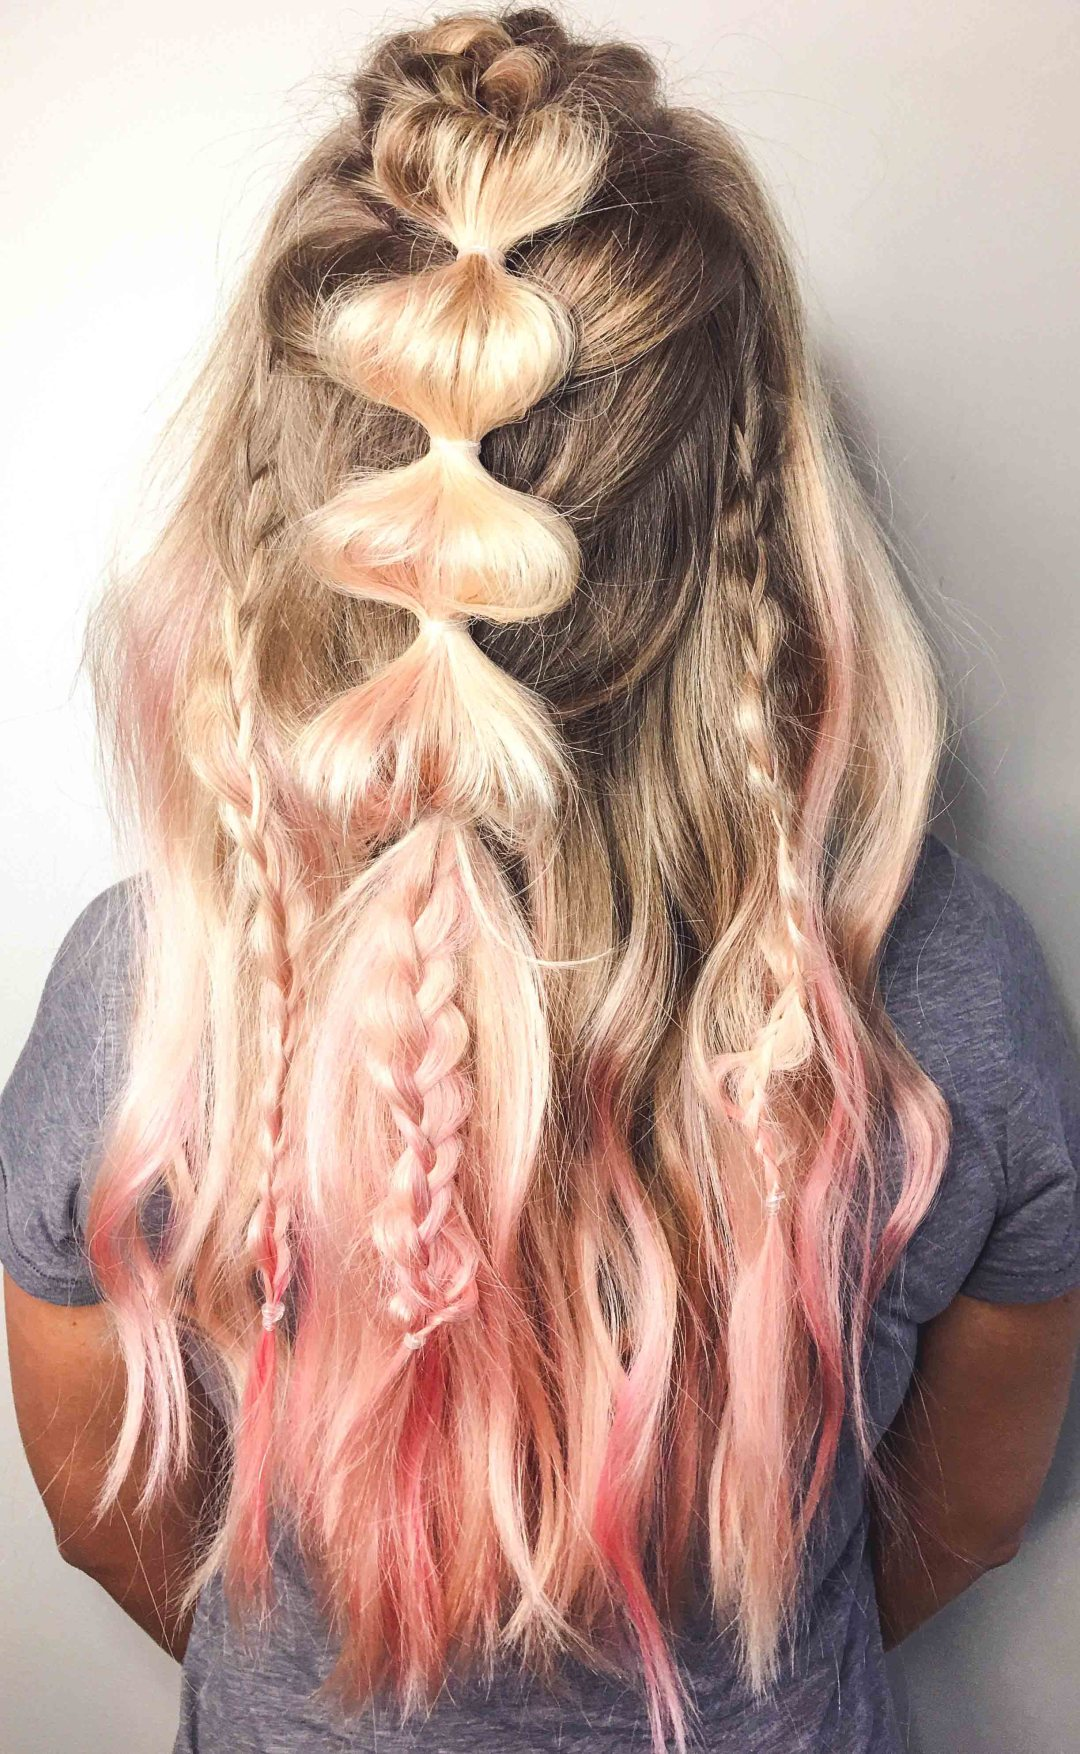 How-to: Unicorn Hairstyle by Atlanta blogger Jessica of Happily Hughes